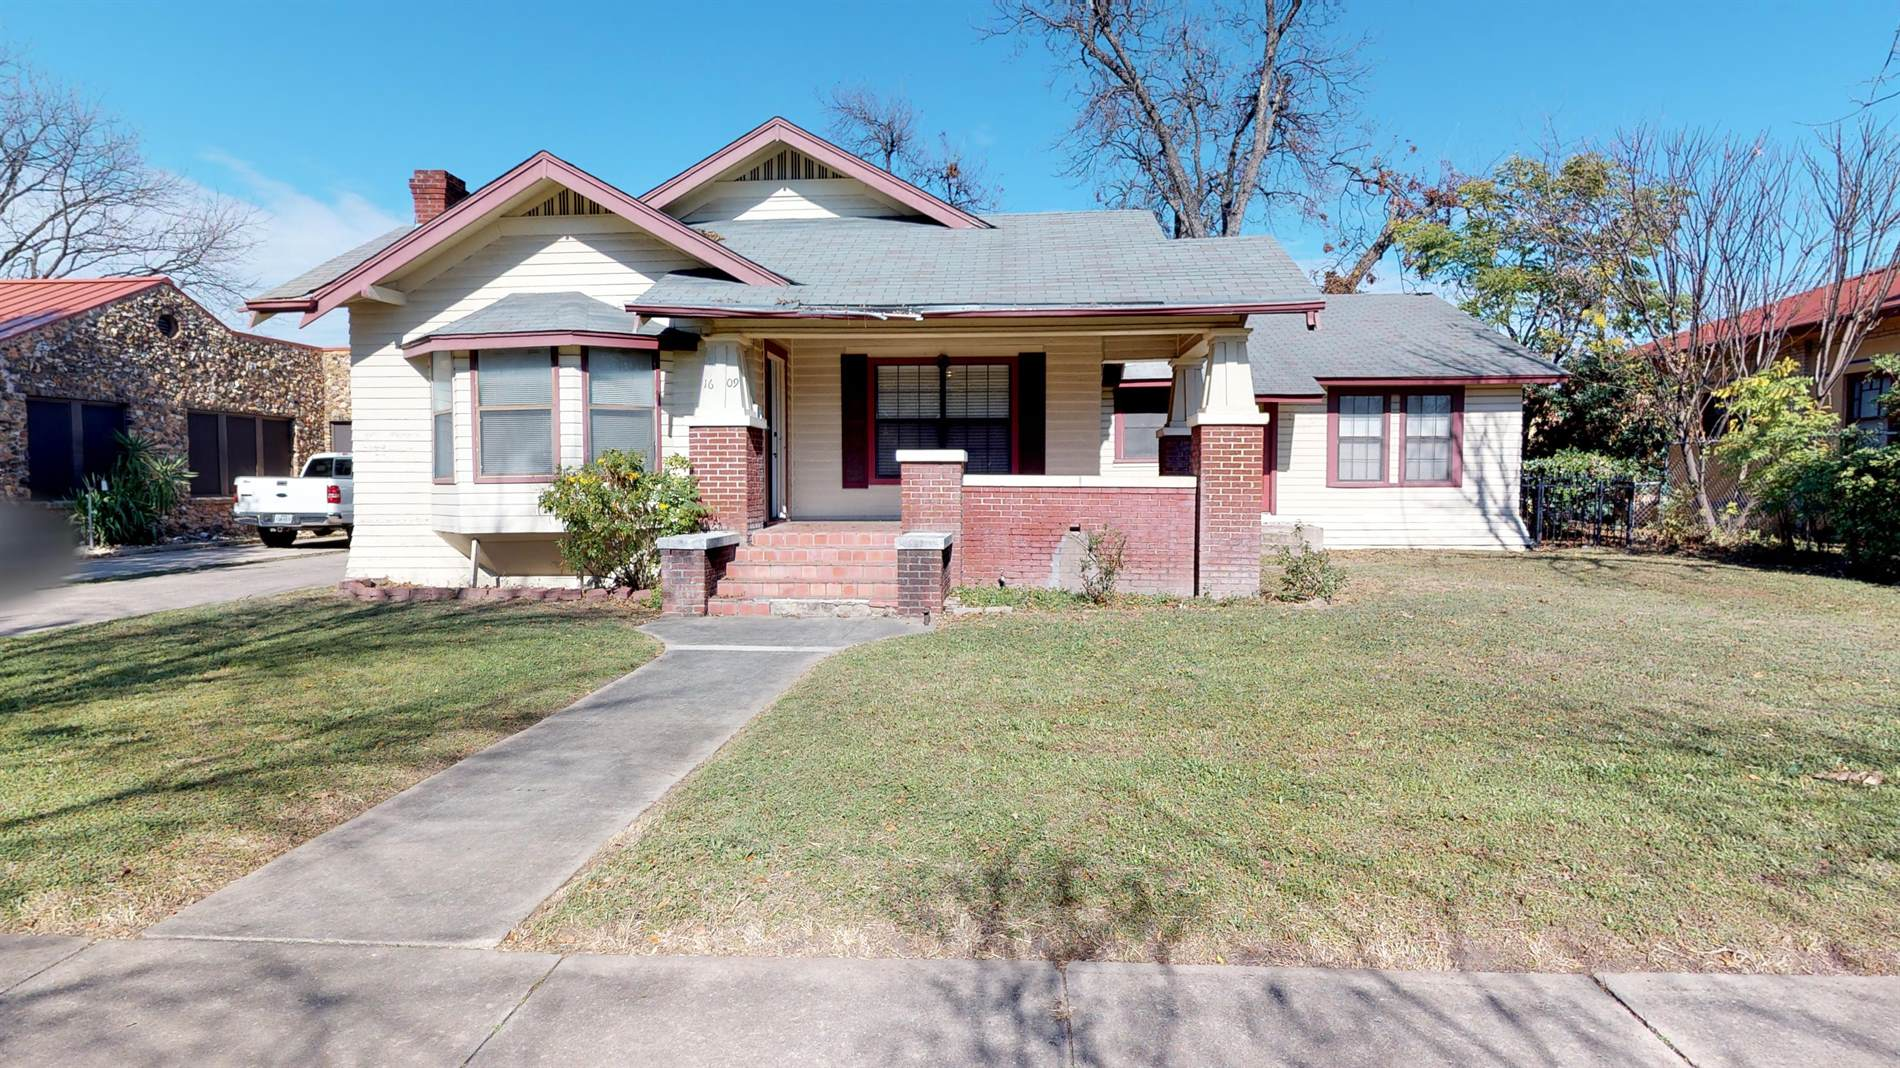 1609 West Summit Ave, San Antonio, TX 78201